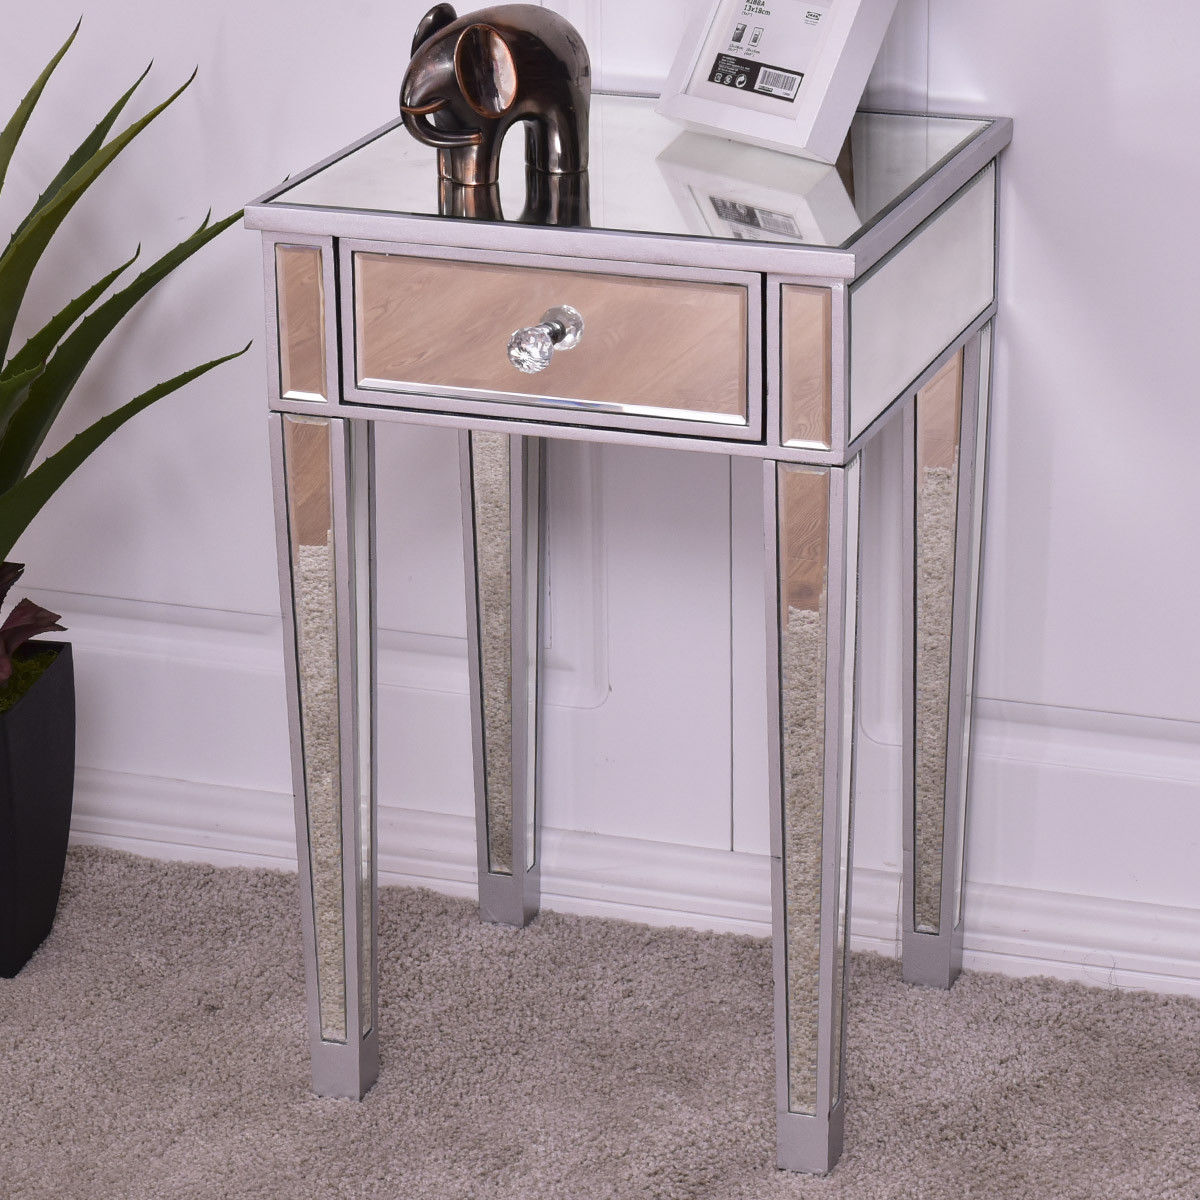 giantex mirrored accent table nightstand end luxury modern bedside storage cabinet with drawer coffee tables drawers black metal glass sofa silver hampton bay furniture covers